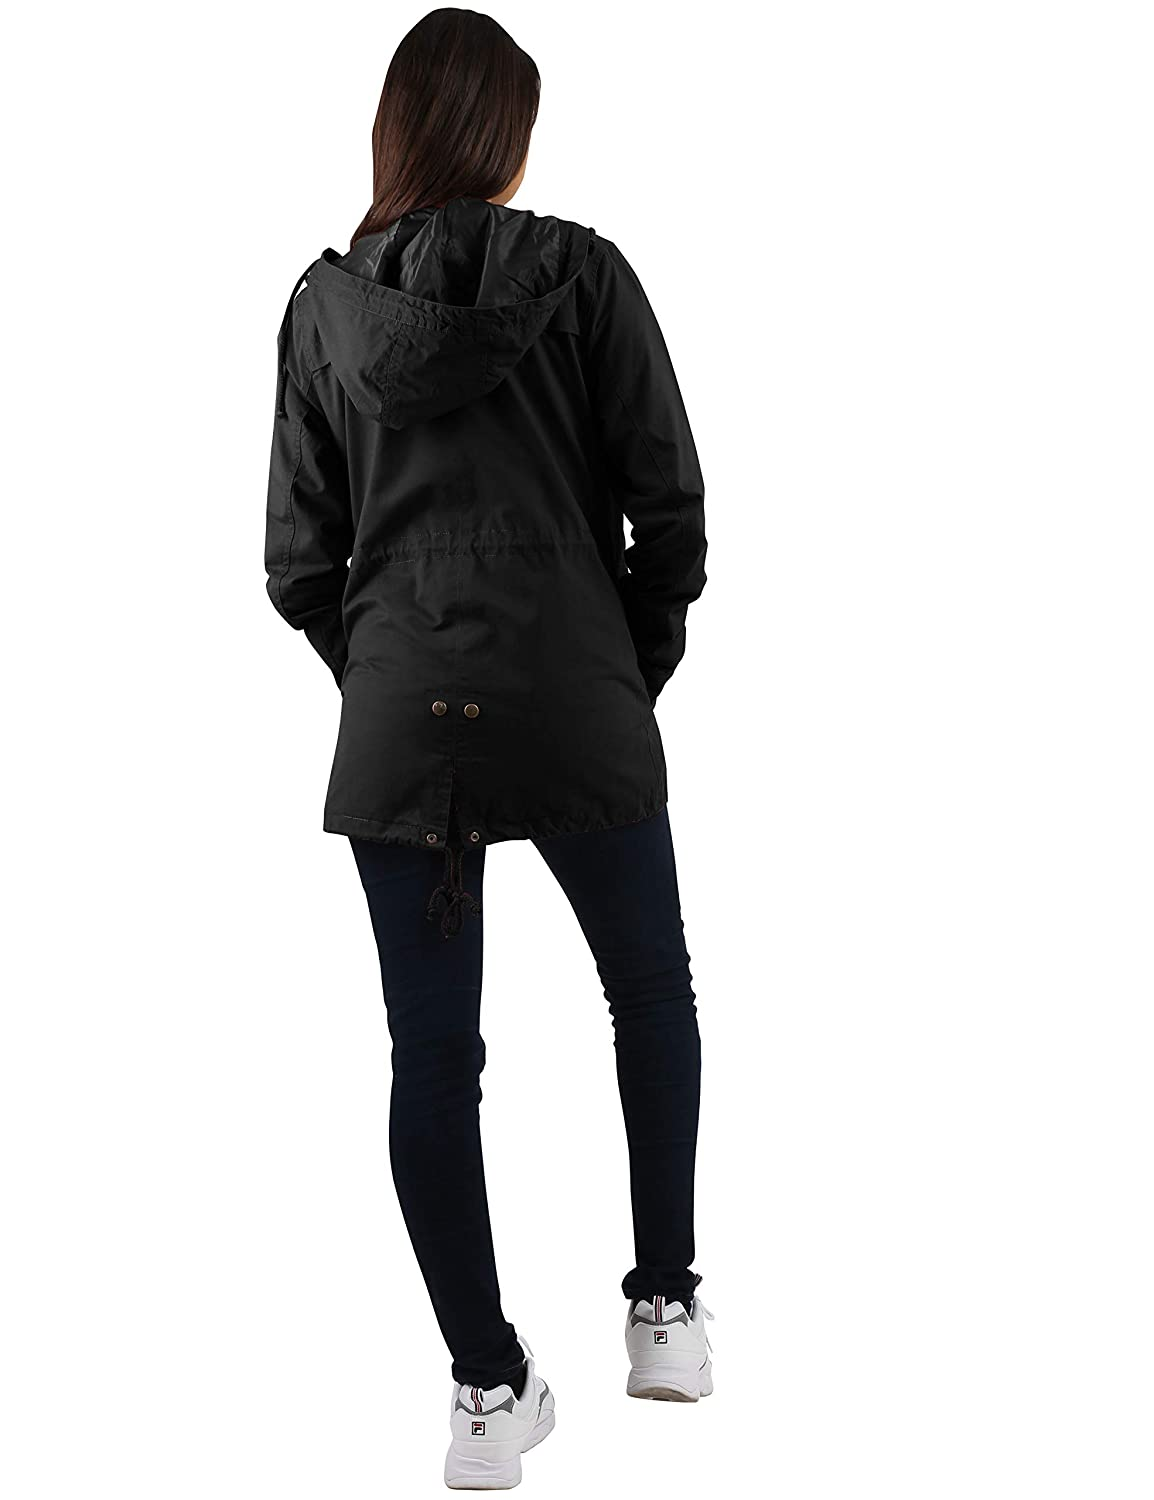 ceaeea6f703 Hat and Beyond Womens Hooded Anorak Jacket Satin Lined Plus Size ...